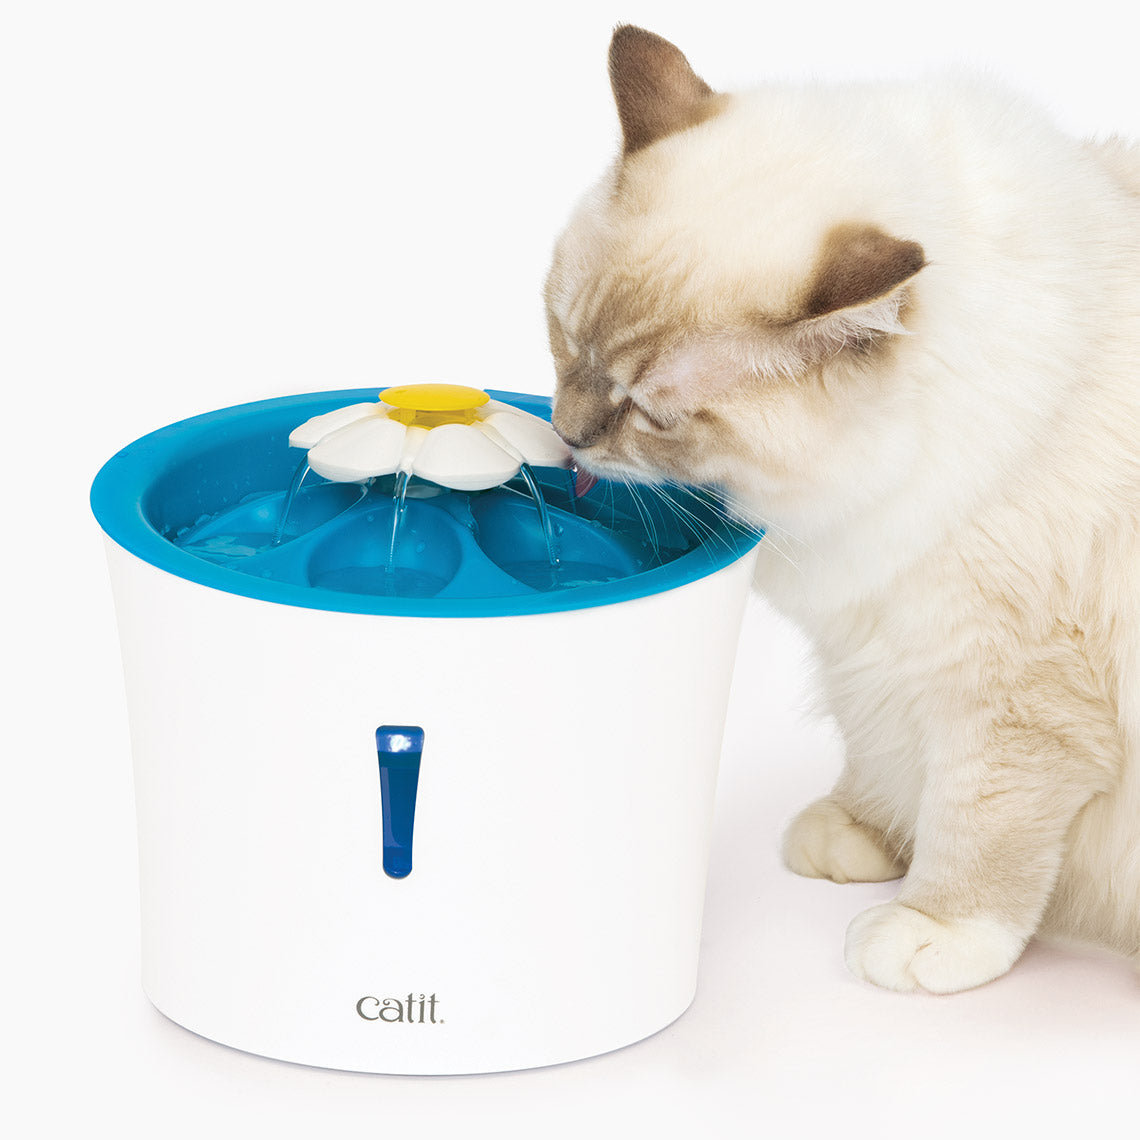 Catit Flower Fountain With Led Nightlight - Pica's Pets